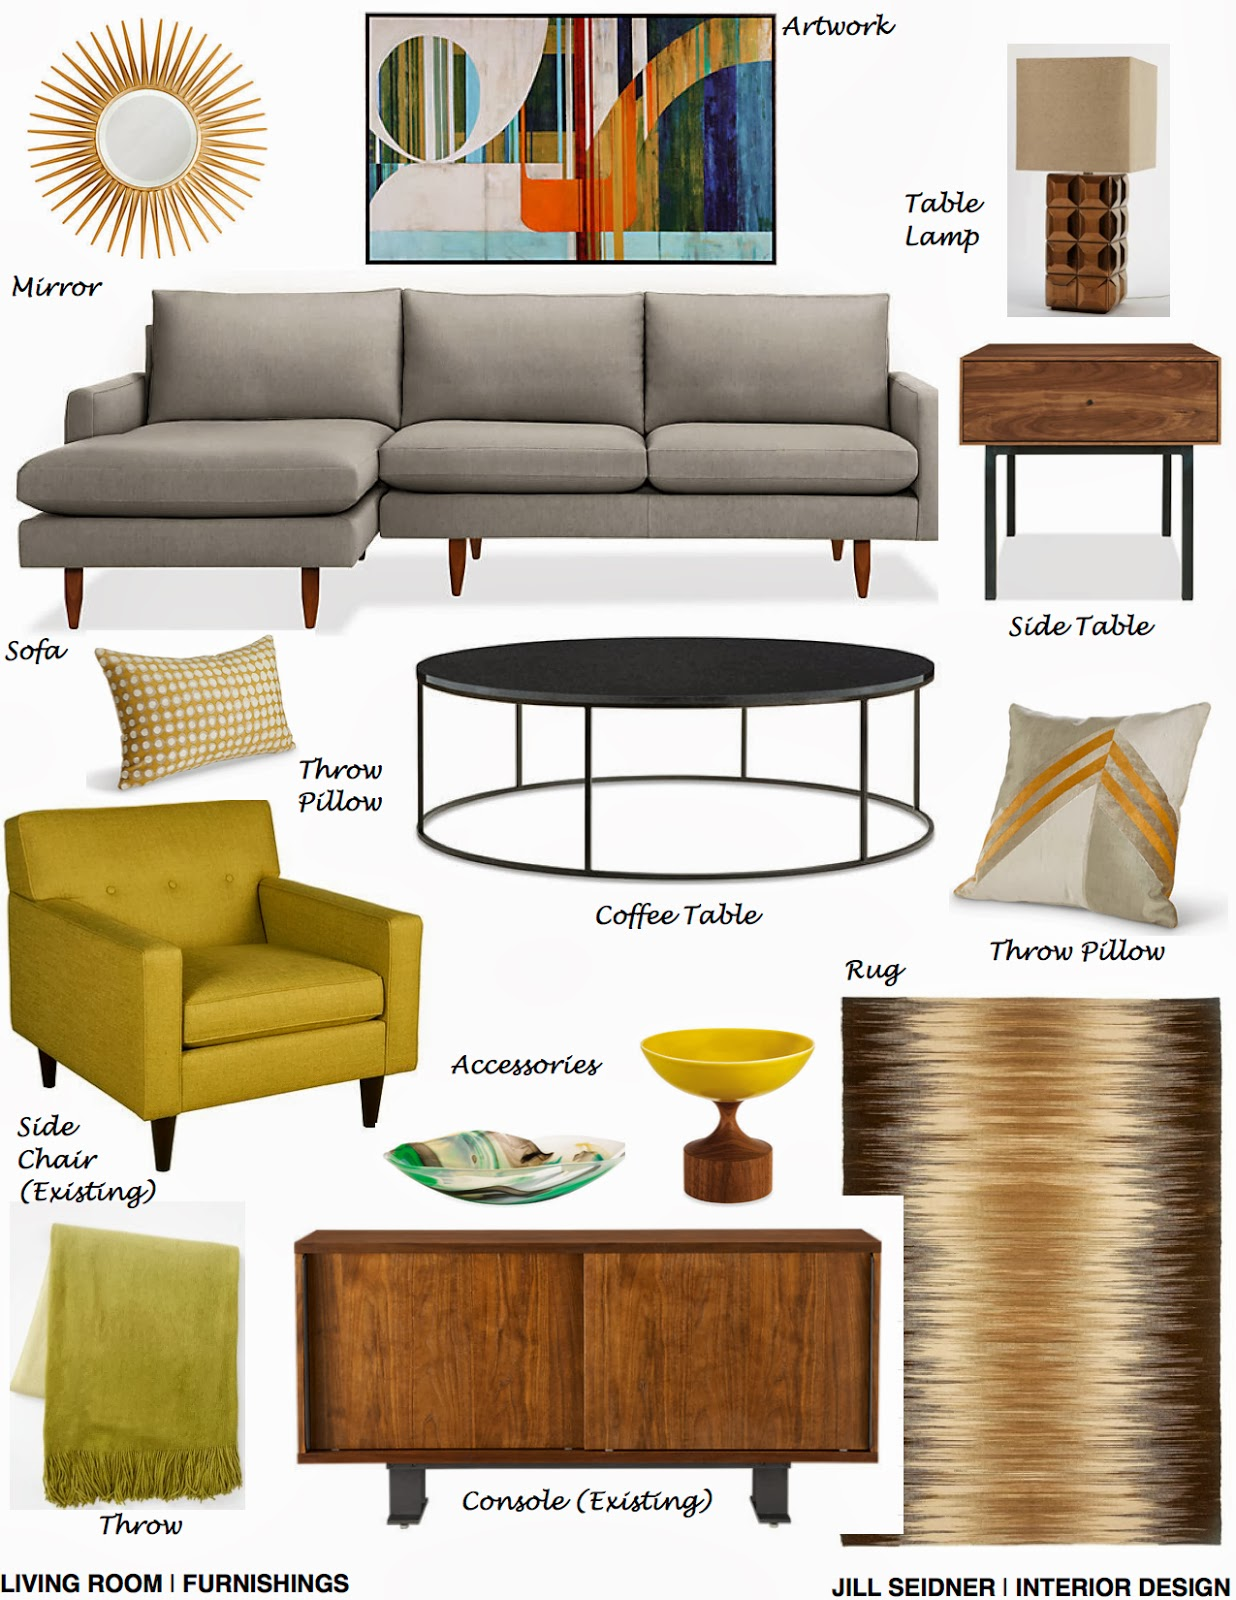 Jill seidner interior design concept boards for Interior design concept